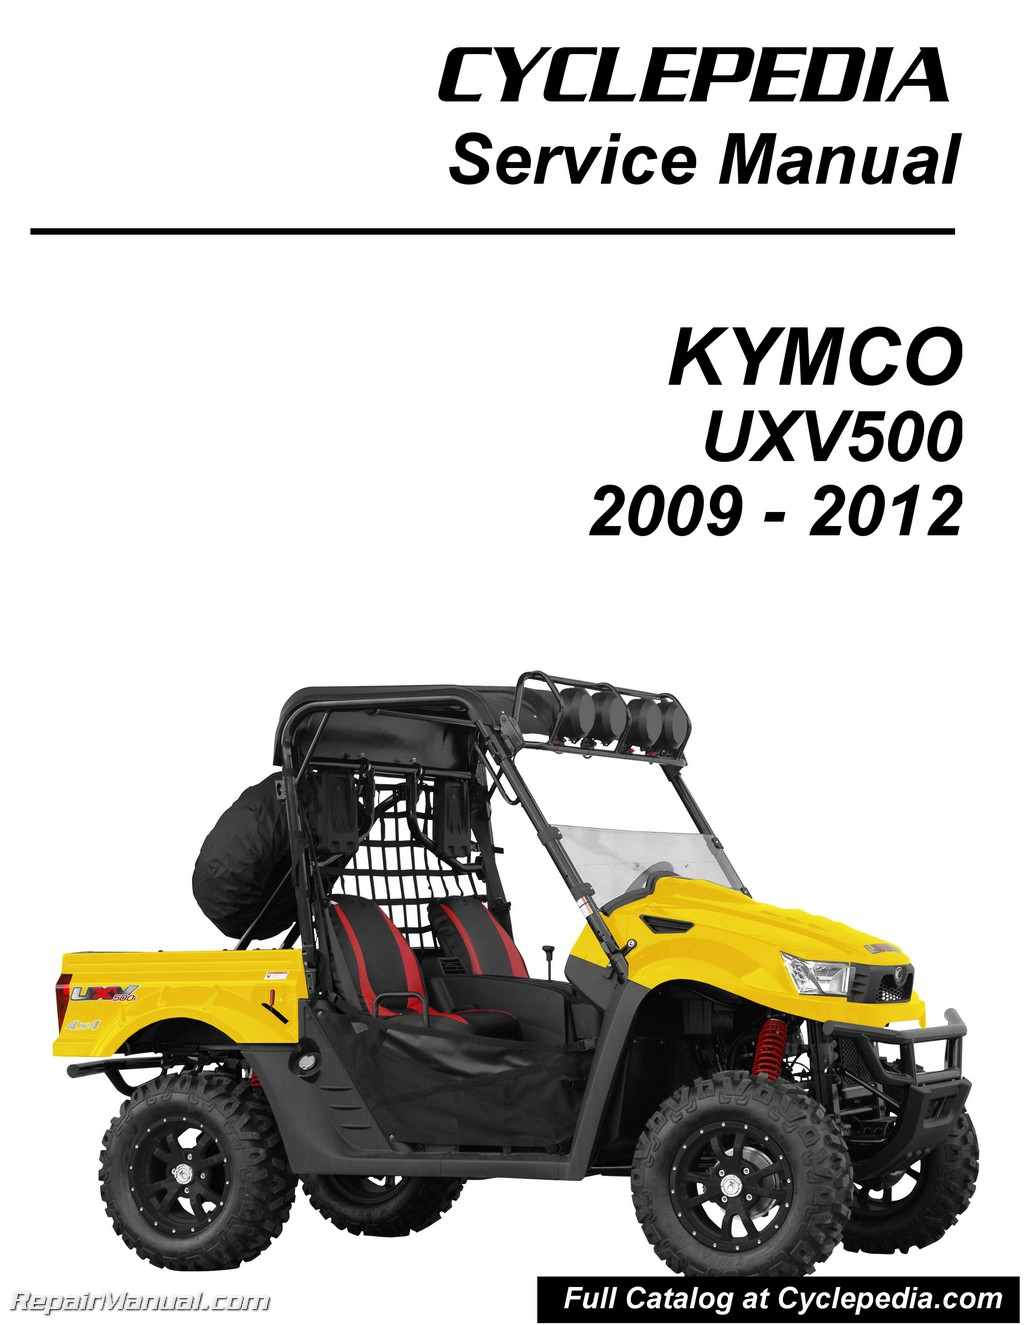 2011 Kymco Uxv 500 Le Pic 11 2008 Wiring Diagram Back Download Picture Size 1024x1325 Next